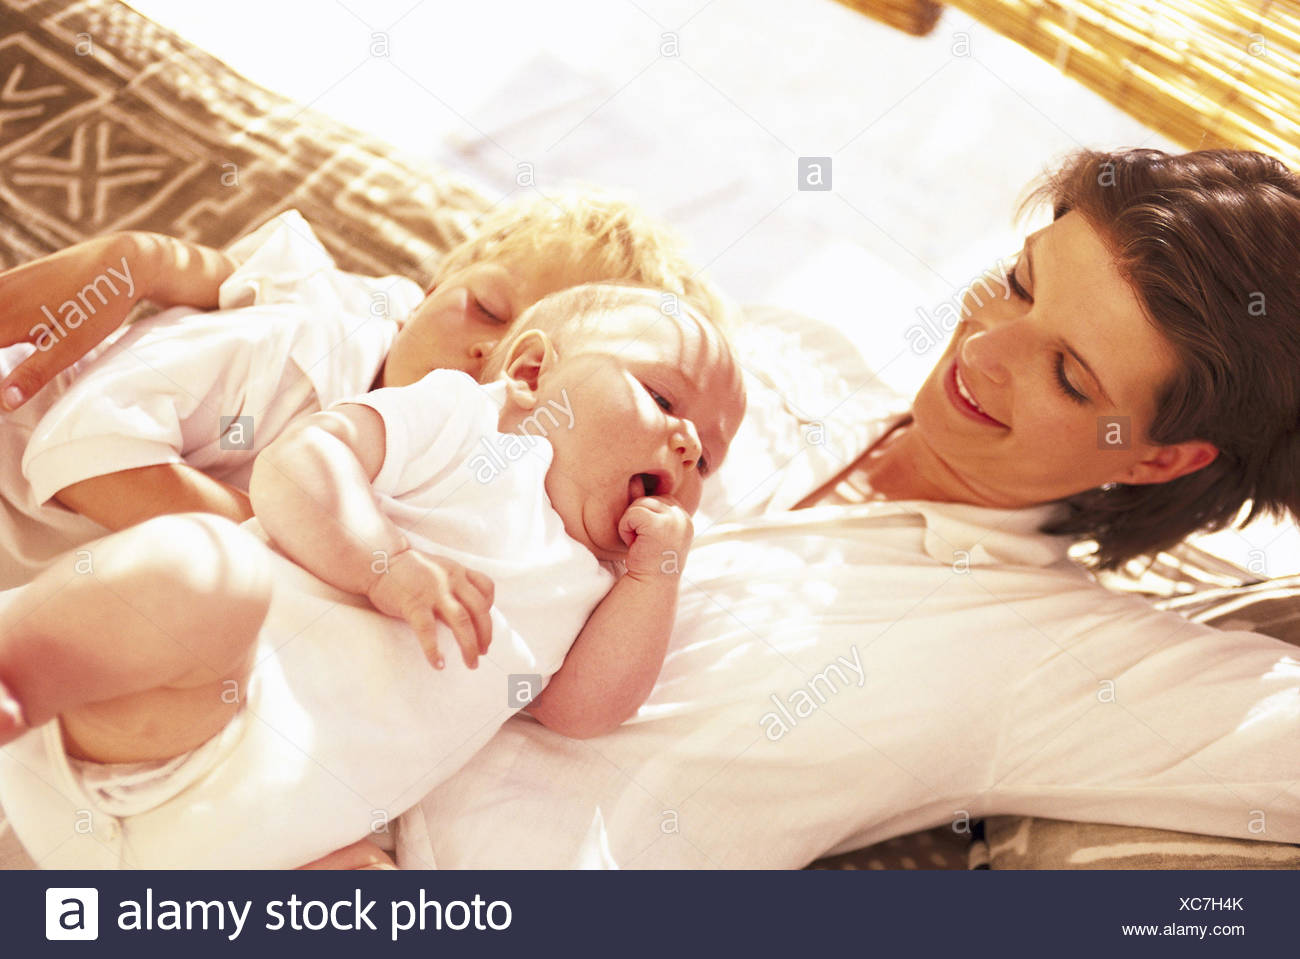 Woman 30 Years Maternity Care Love Security Closeness Cuddle Nestle Up Affection Tenderness Children Son Boy 4 Siblings 8 Months